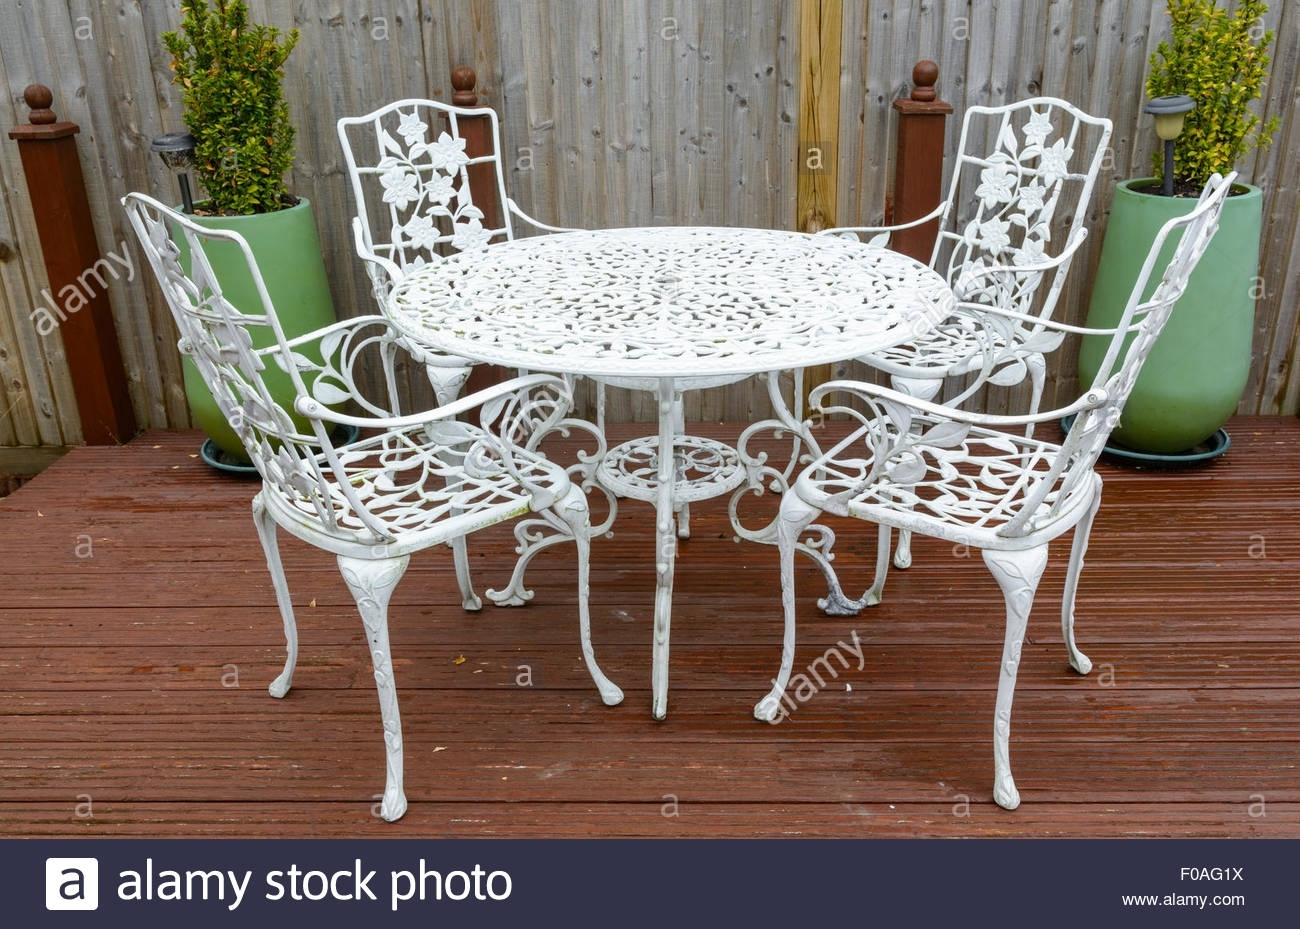 Cast Iron Chairs Stock Photos & Cast Iron Chairs Stock Images – Alamy Throughout Favorite Chapleau Side Chairs (#2 of 20)